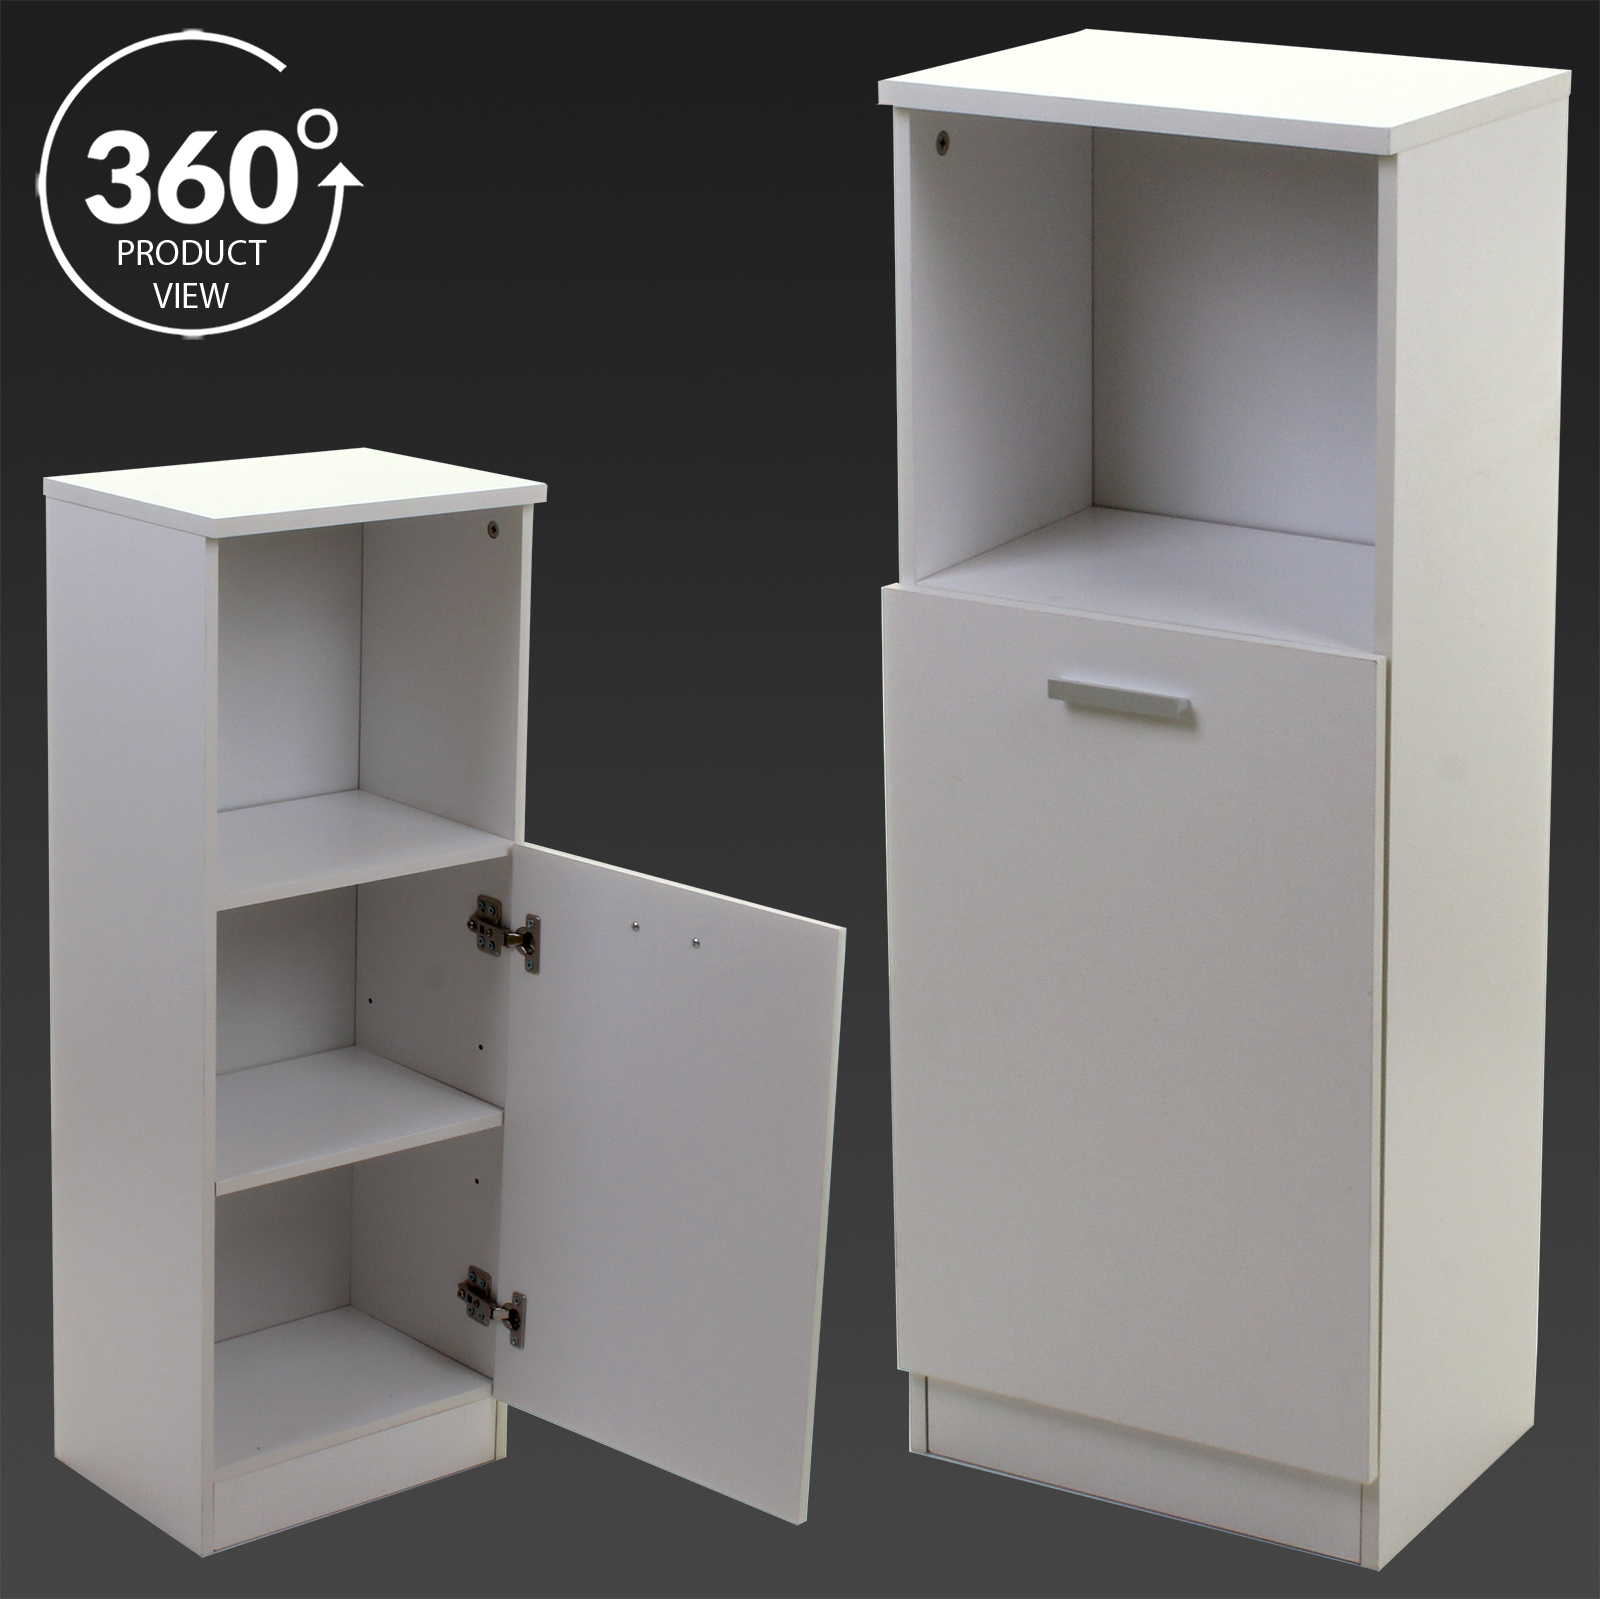 White wooden bathroom cabinet shelving storage unit for Wooden bathroom shelving unit